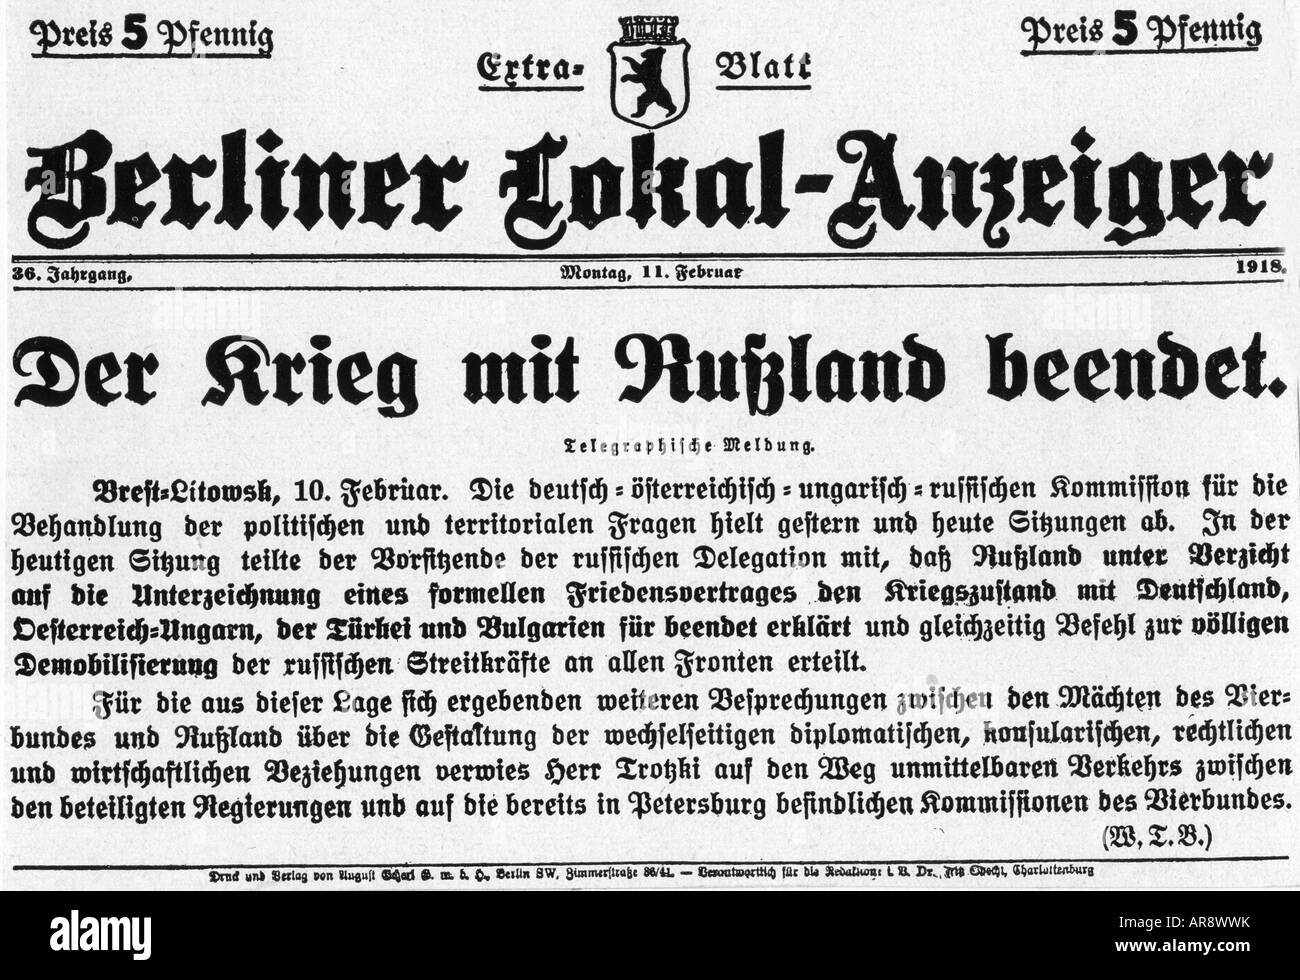 events, First World War / WWI, Eastern Front, Treaty of Brest-Litovsk, report, 'Berliner Lokal Anzeiger', - Stock Image